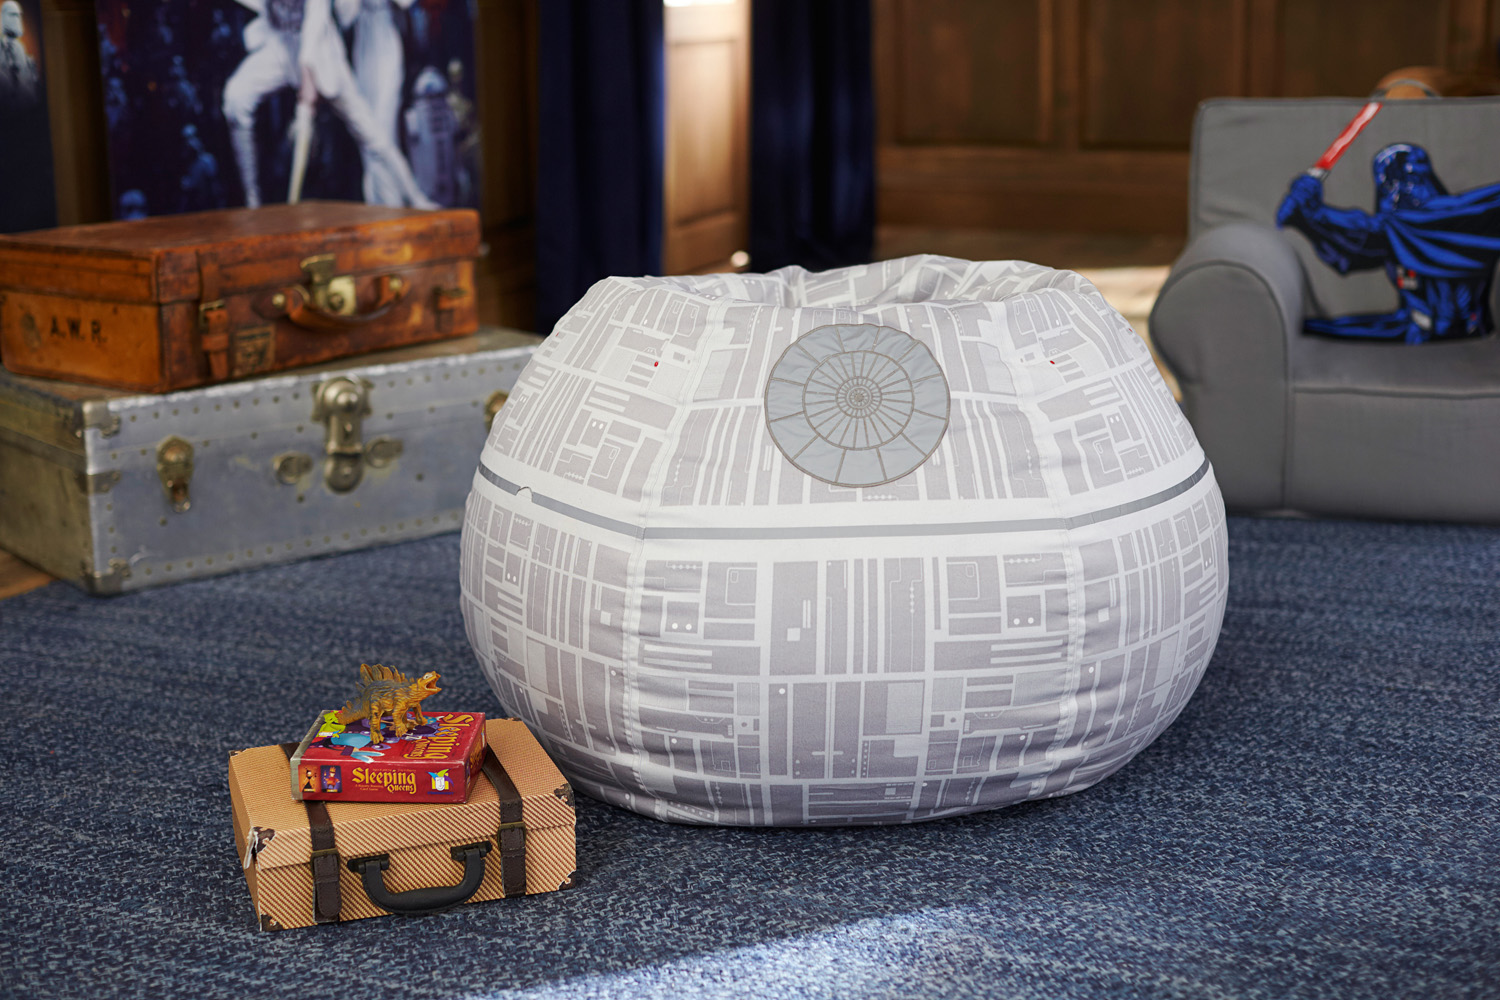 Pottery Barn Death Star beanbag chair & Pottery Barn Star Wars Collection - Preview! | StarWars.com